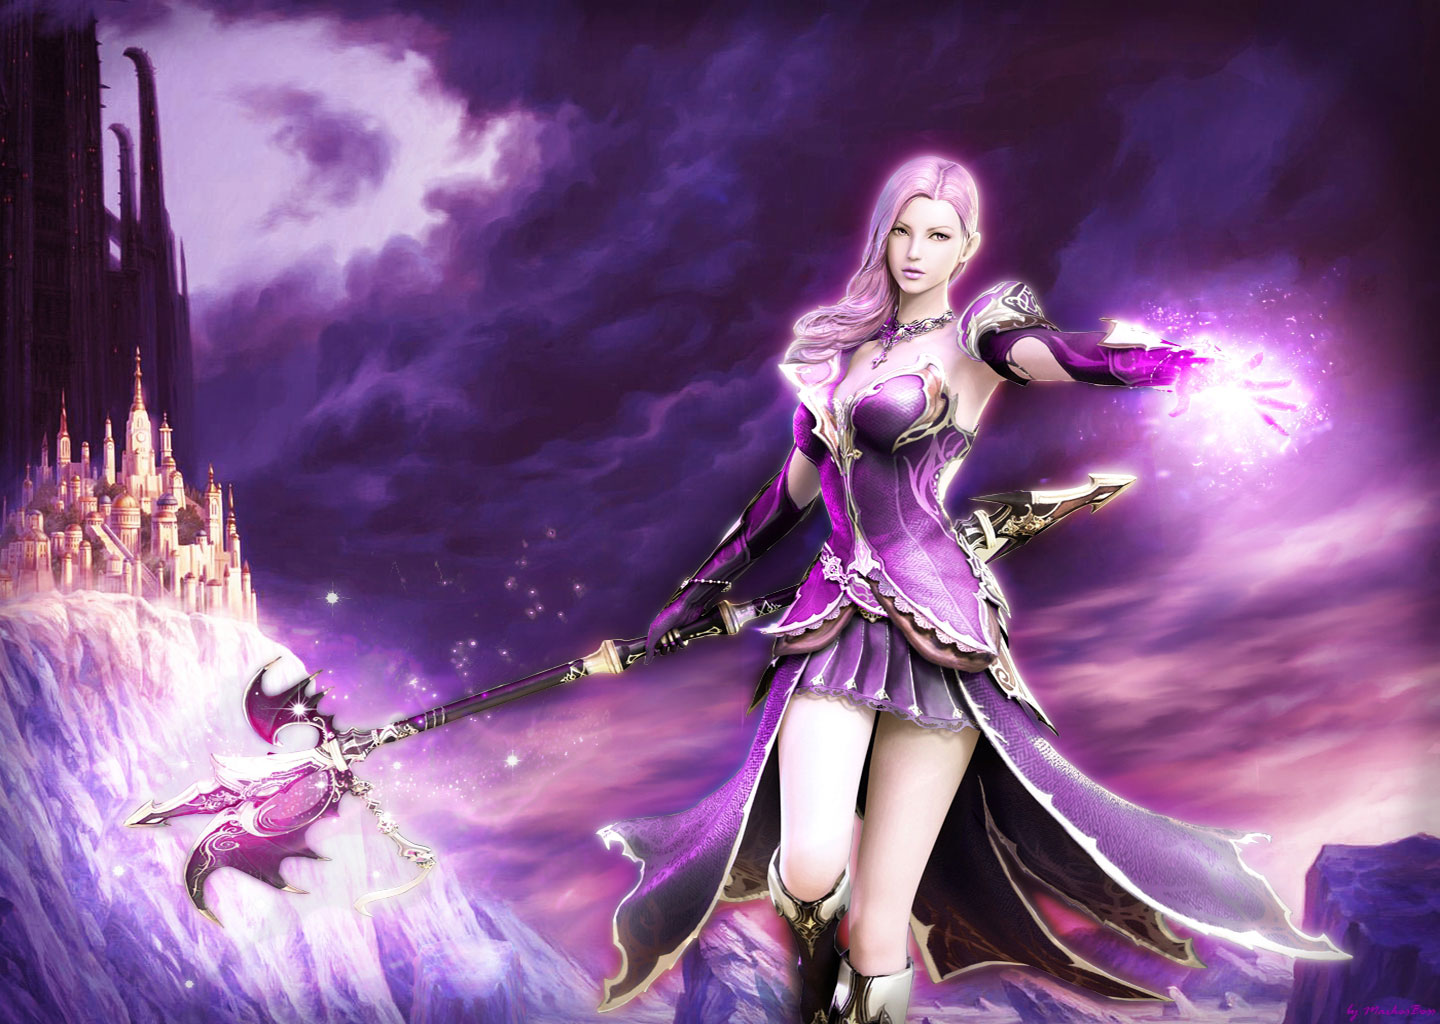 Aion Computer Wallpapers Desktop Backgrounds 1440x1024 ID161489 1440x1024